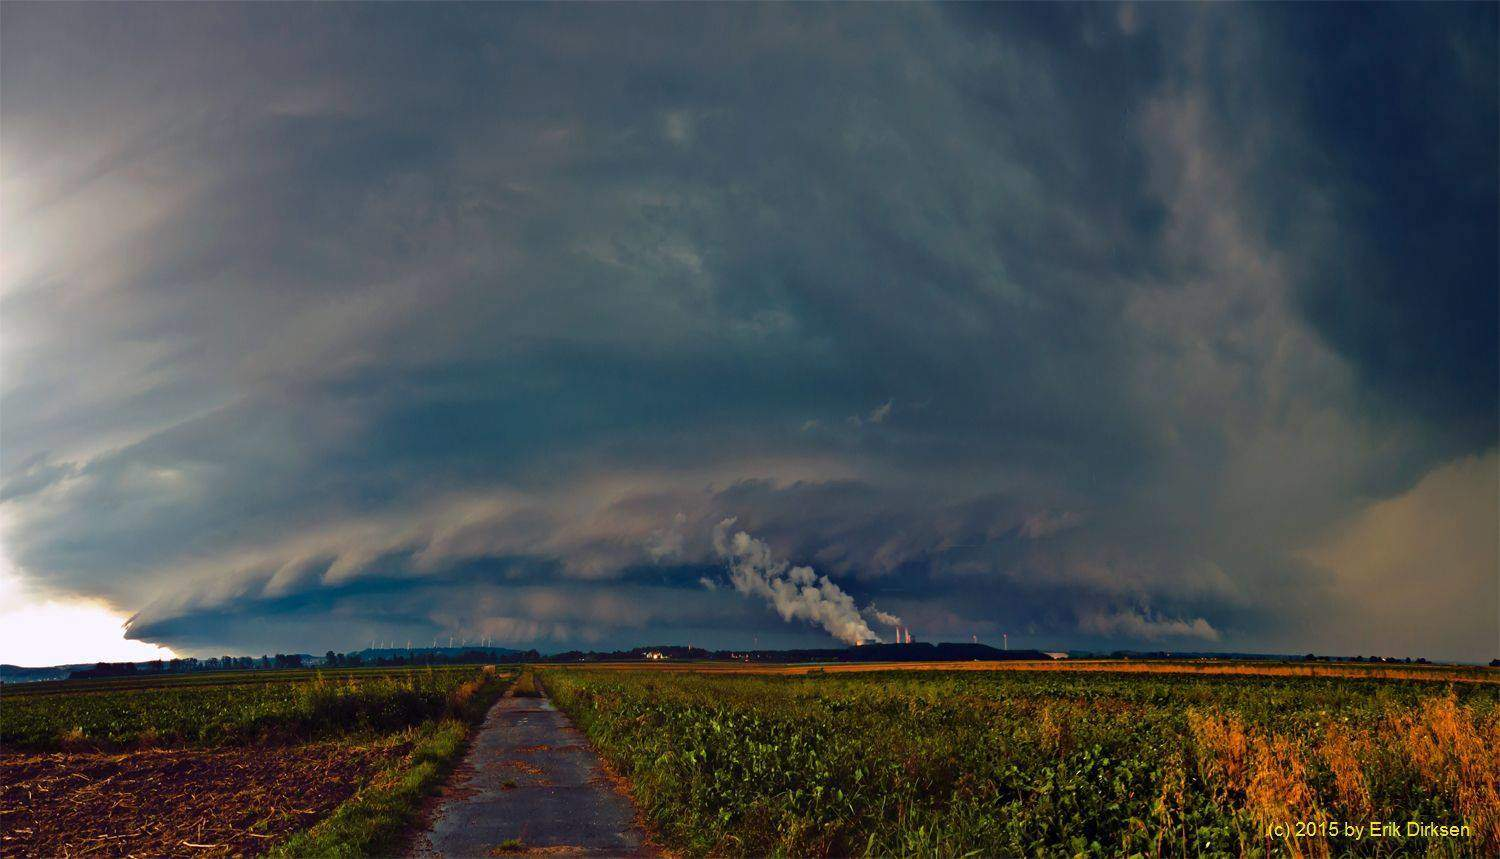 Huge HP-Supercell near the german-dutch border a little bit northeast of Aachen. This Supercell brought some damaging winds and large Hail. New edited panoramic view of 2 stitched Images shot near Jülich, Germany on August 18th 2011.